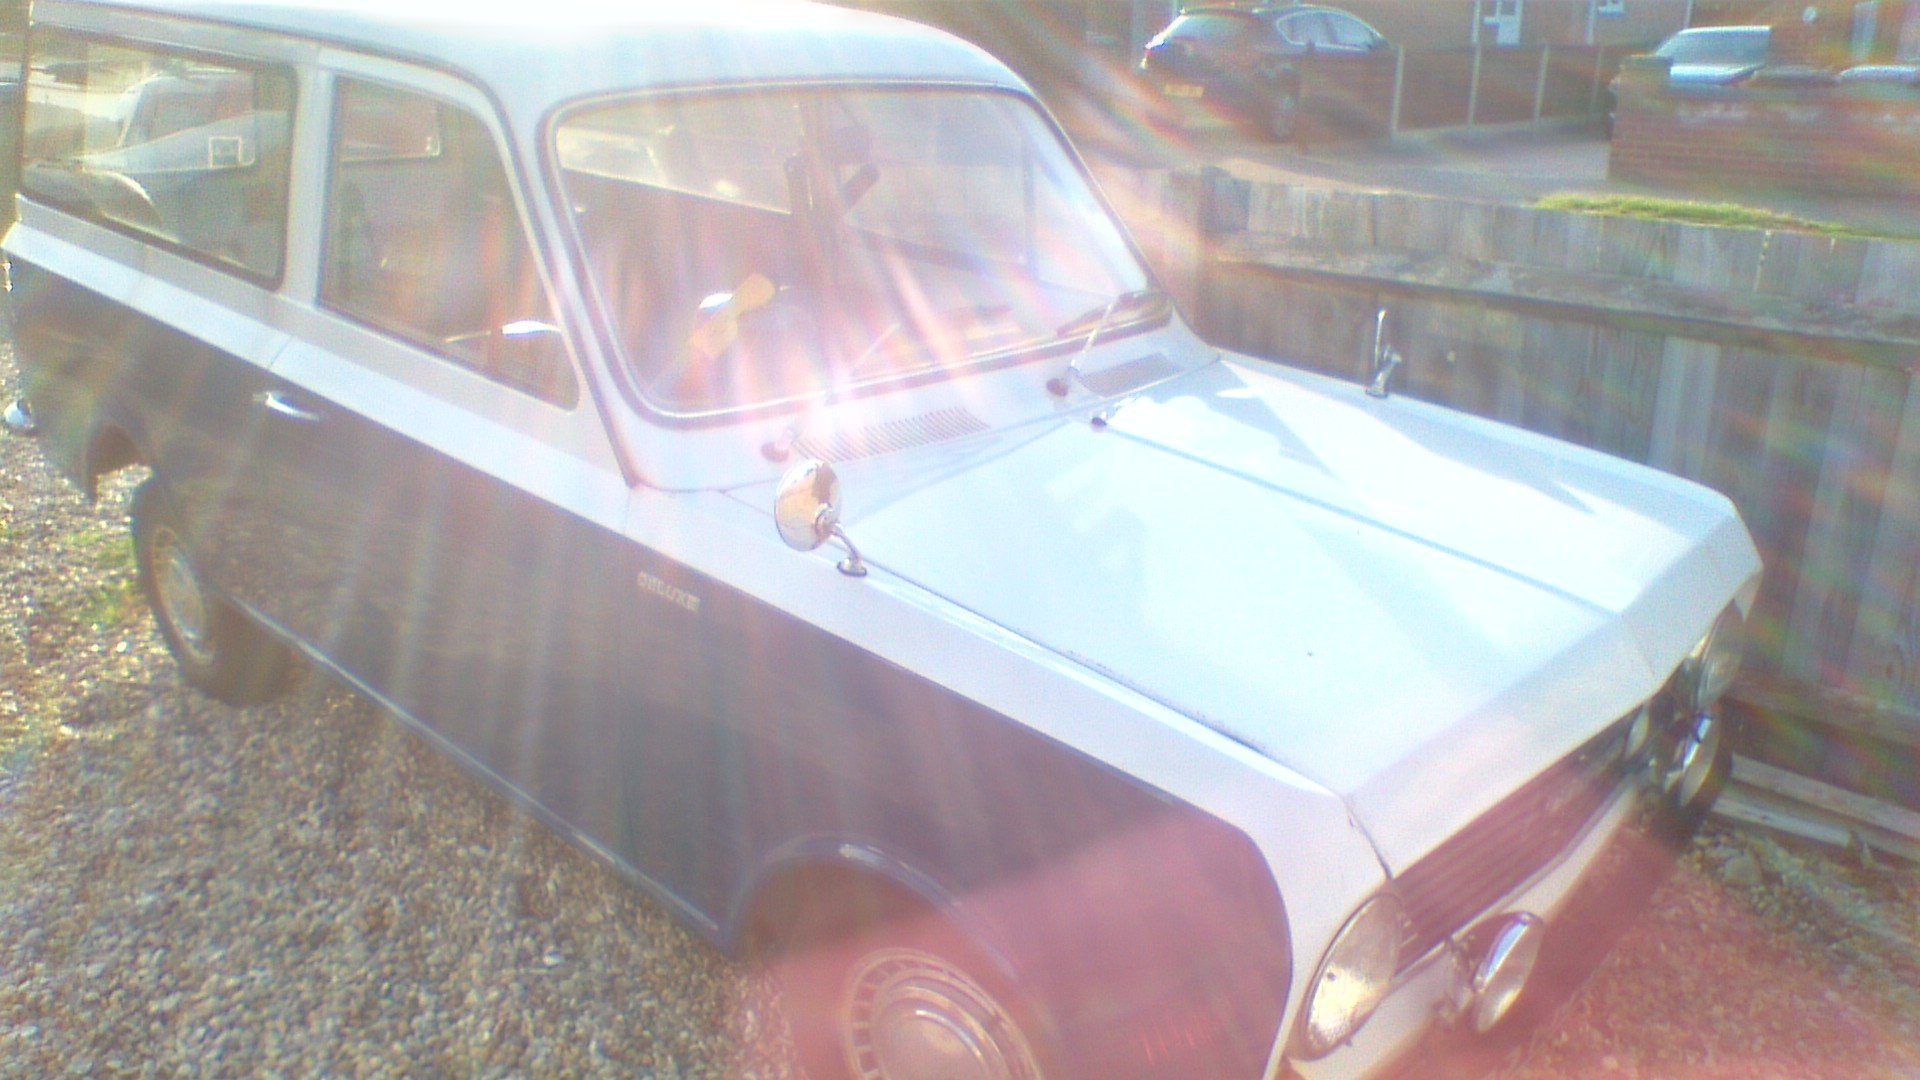 1964 bedford beagle vauxhall ha hb van For Sale (picture 1 of 6)